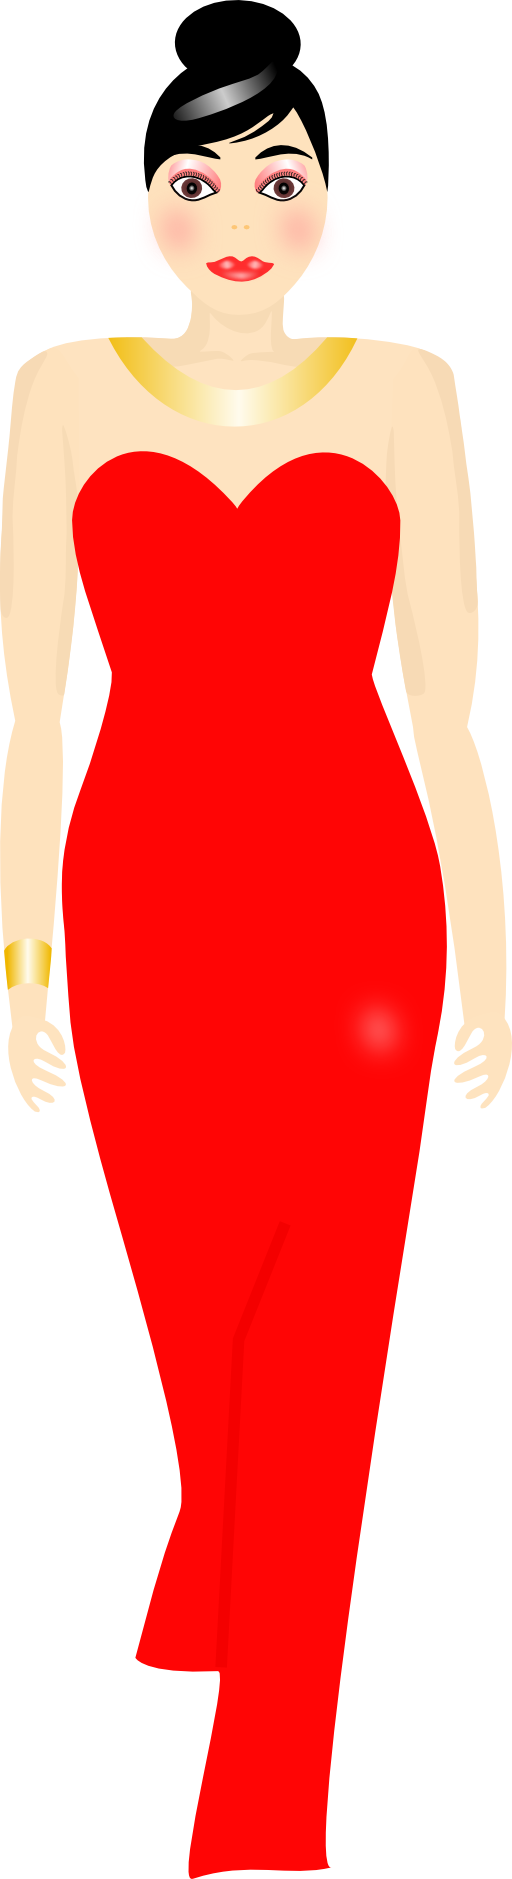 Prom Dress Clipart.